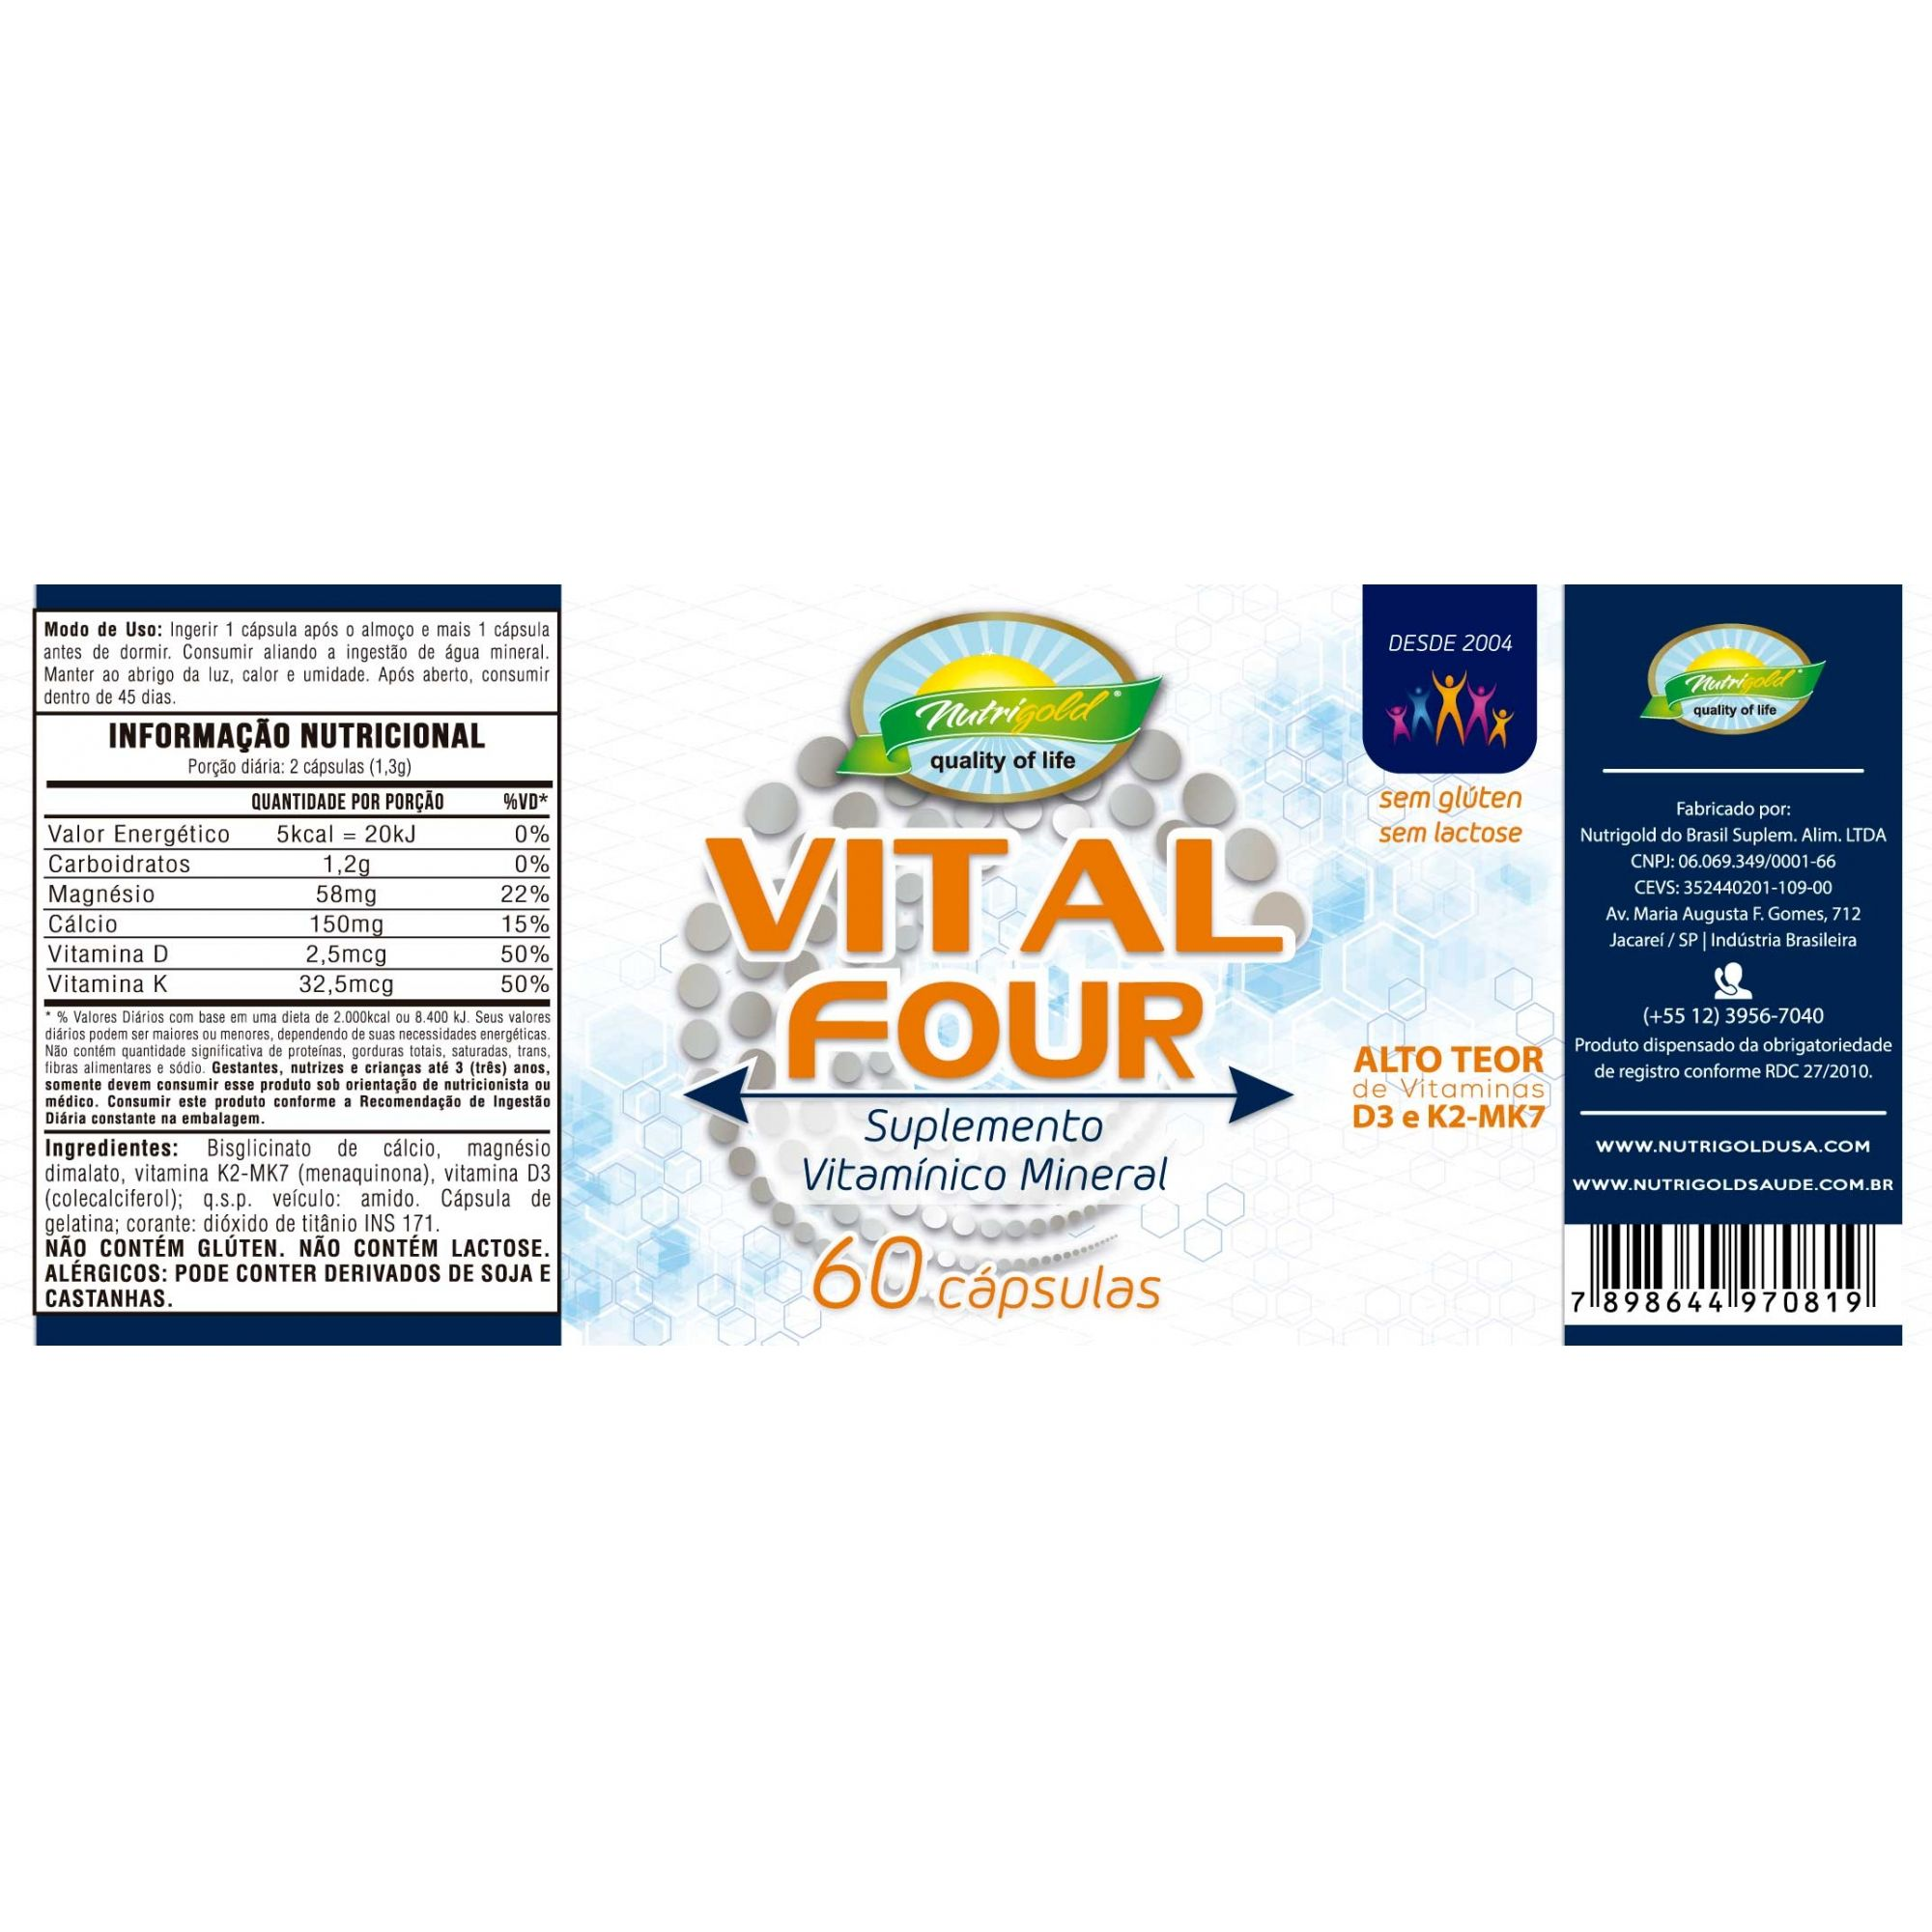 Kit 3 Vital Four - Pote 60 Cápsulas 650mg